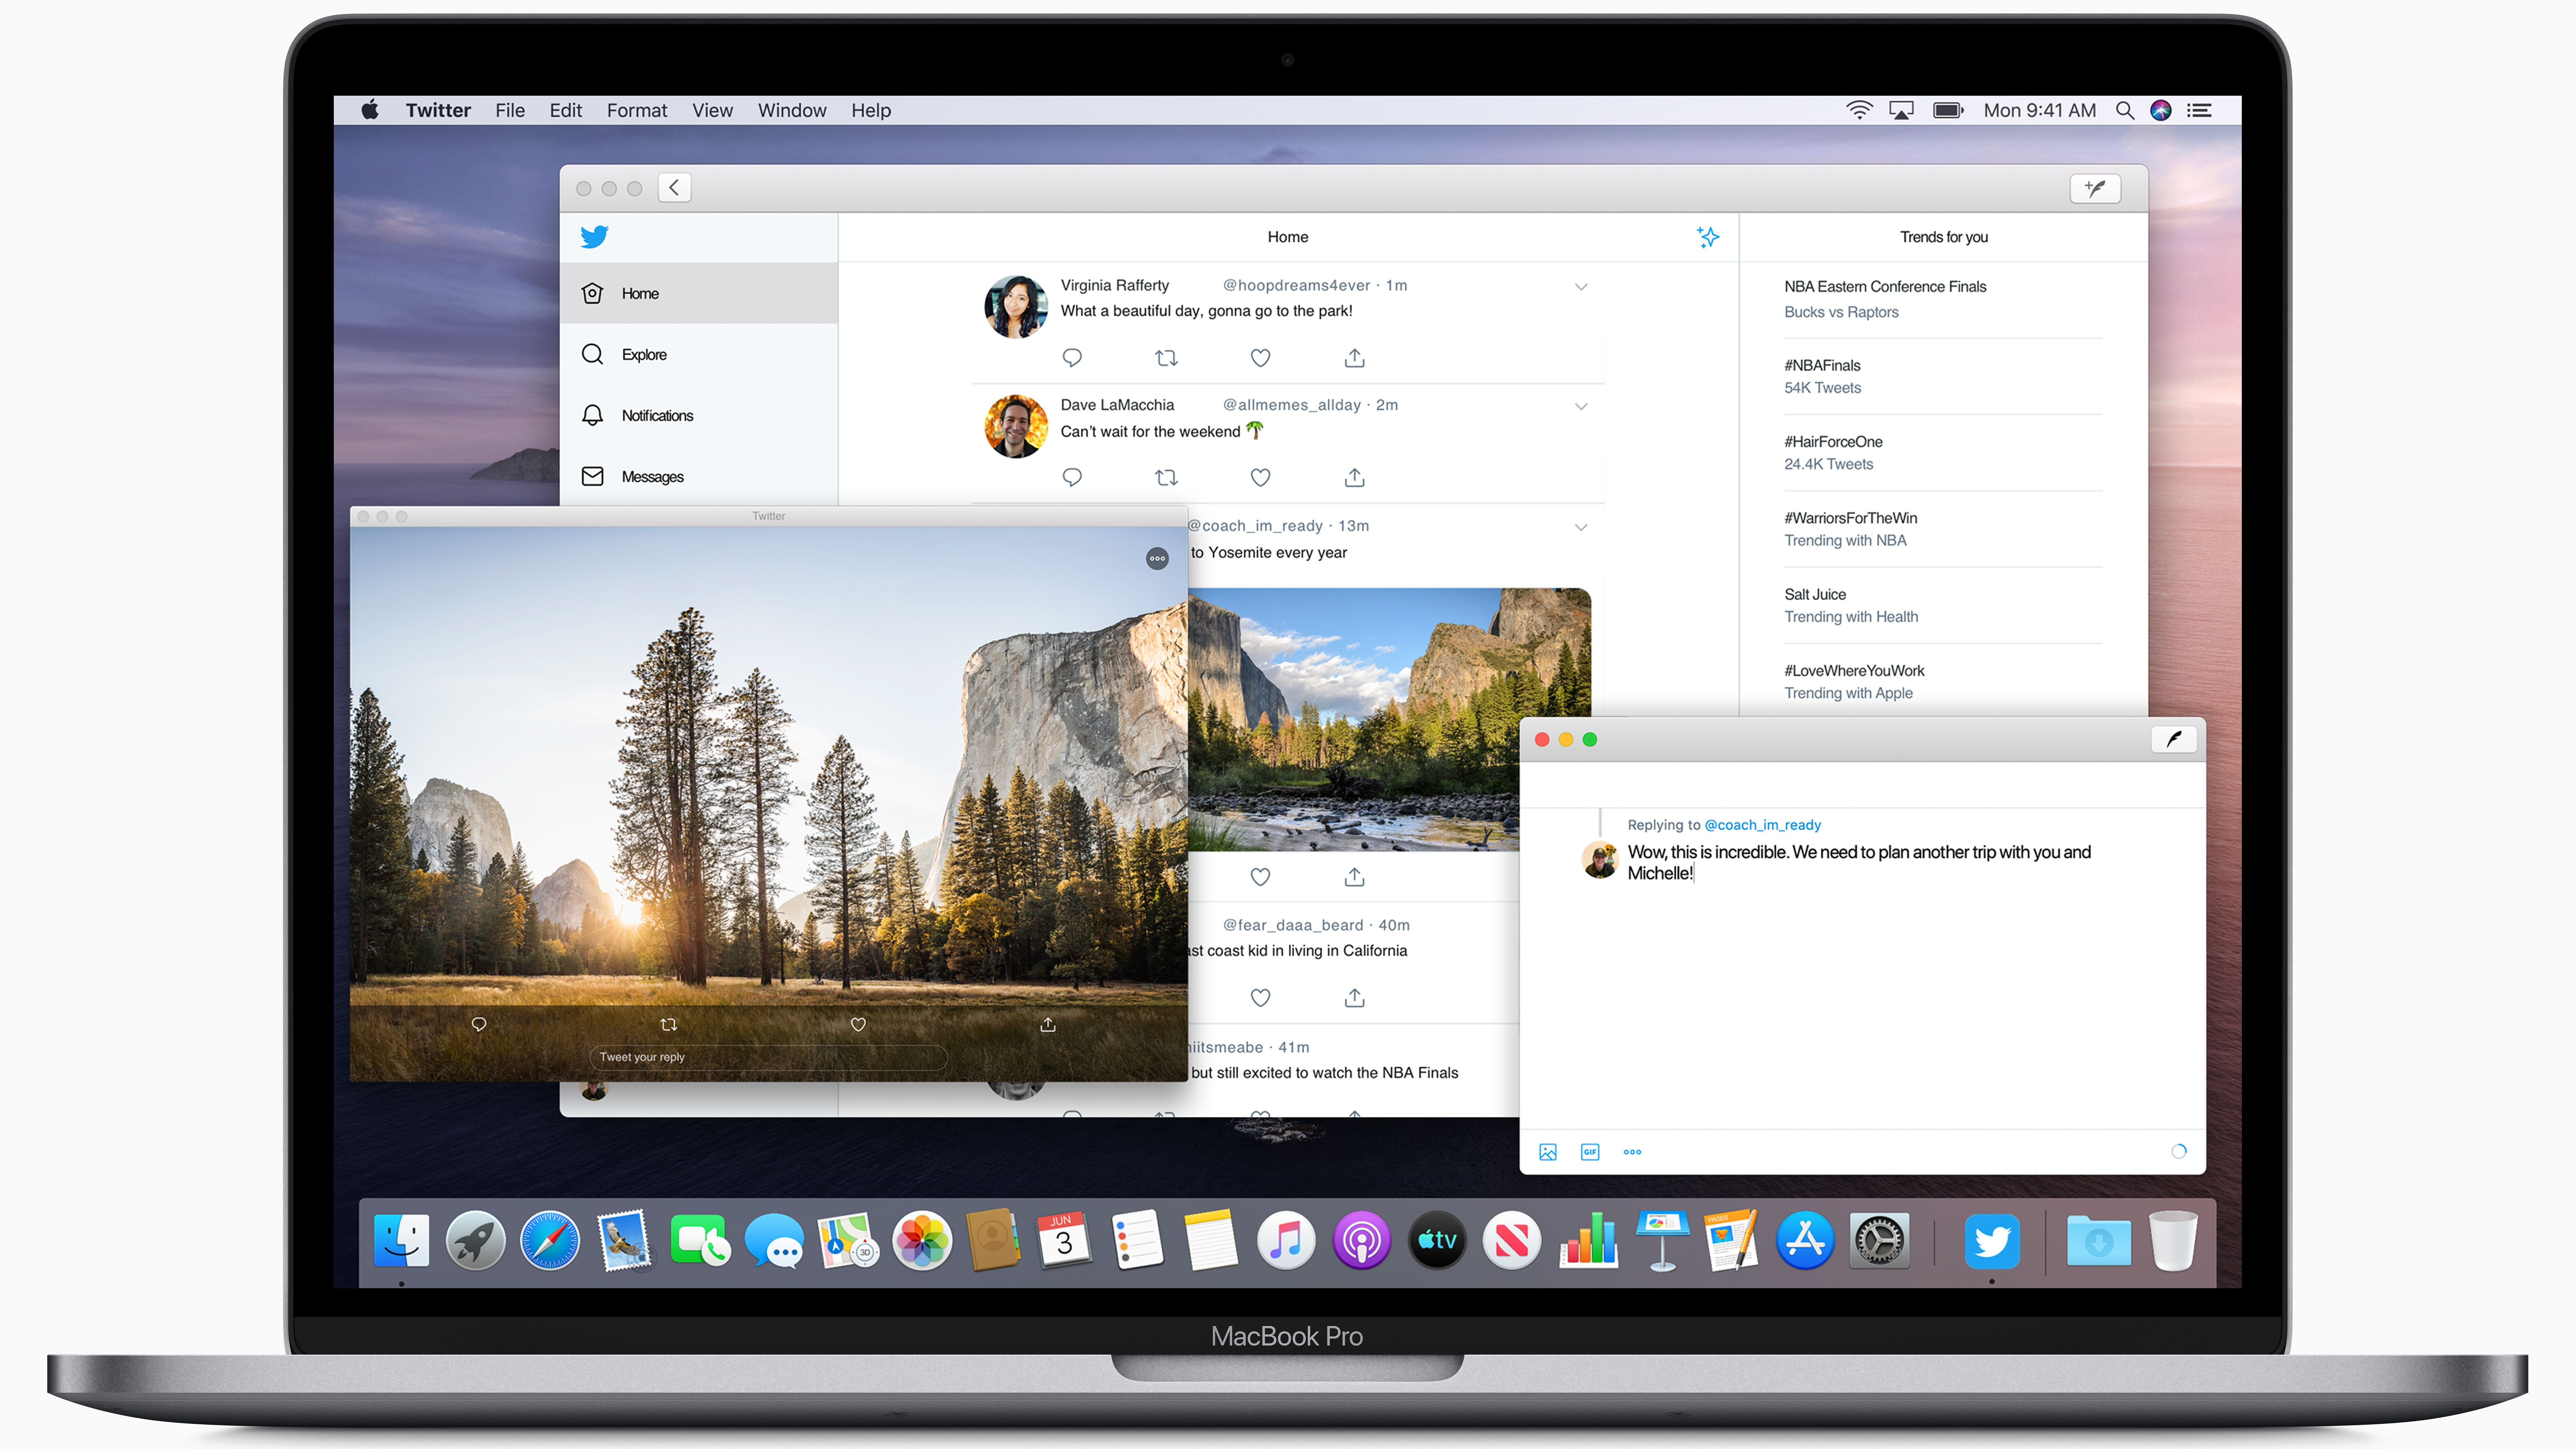 041378d6bafd6bb4a45b1a4fd2133737 - How To Get The Messages App On Your Mac